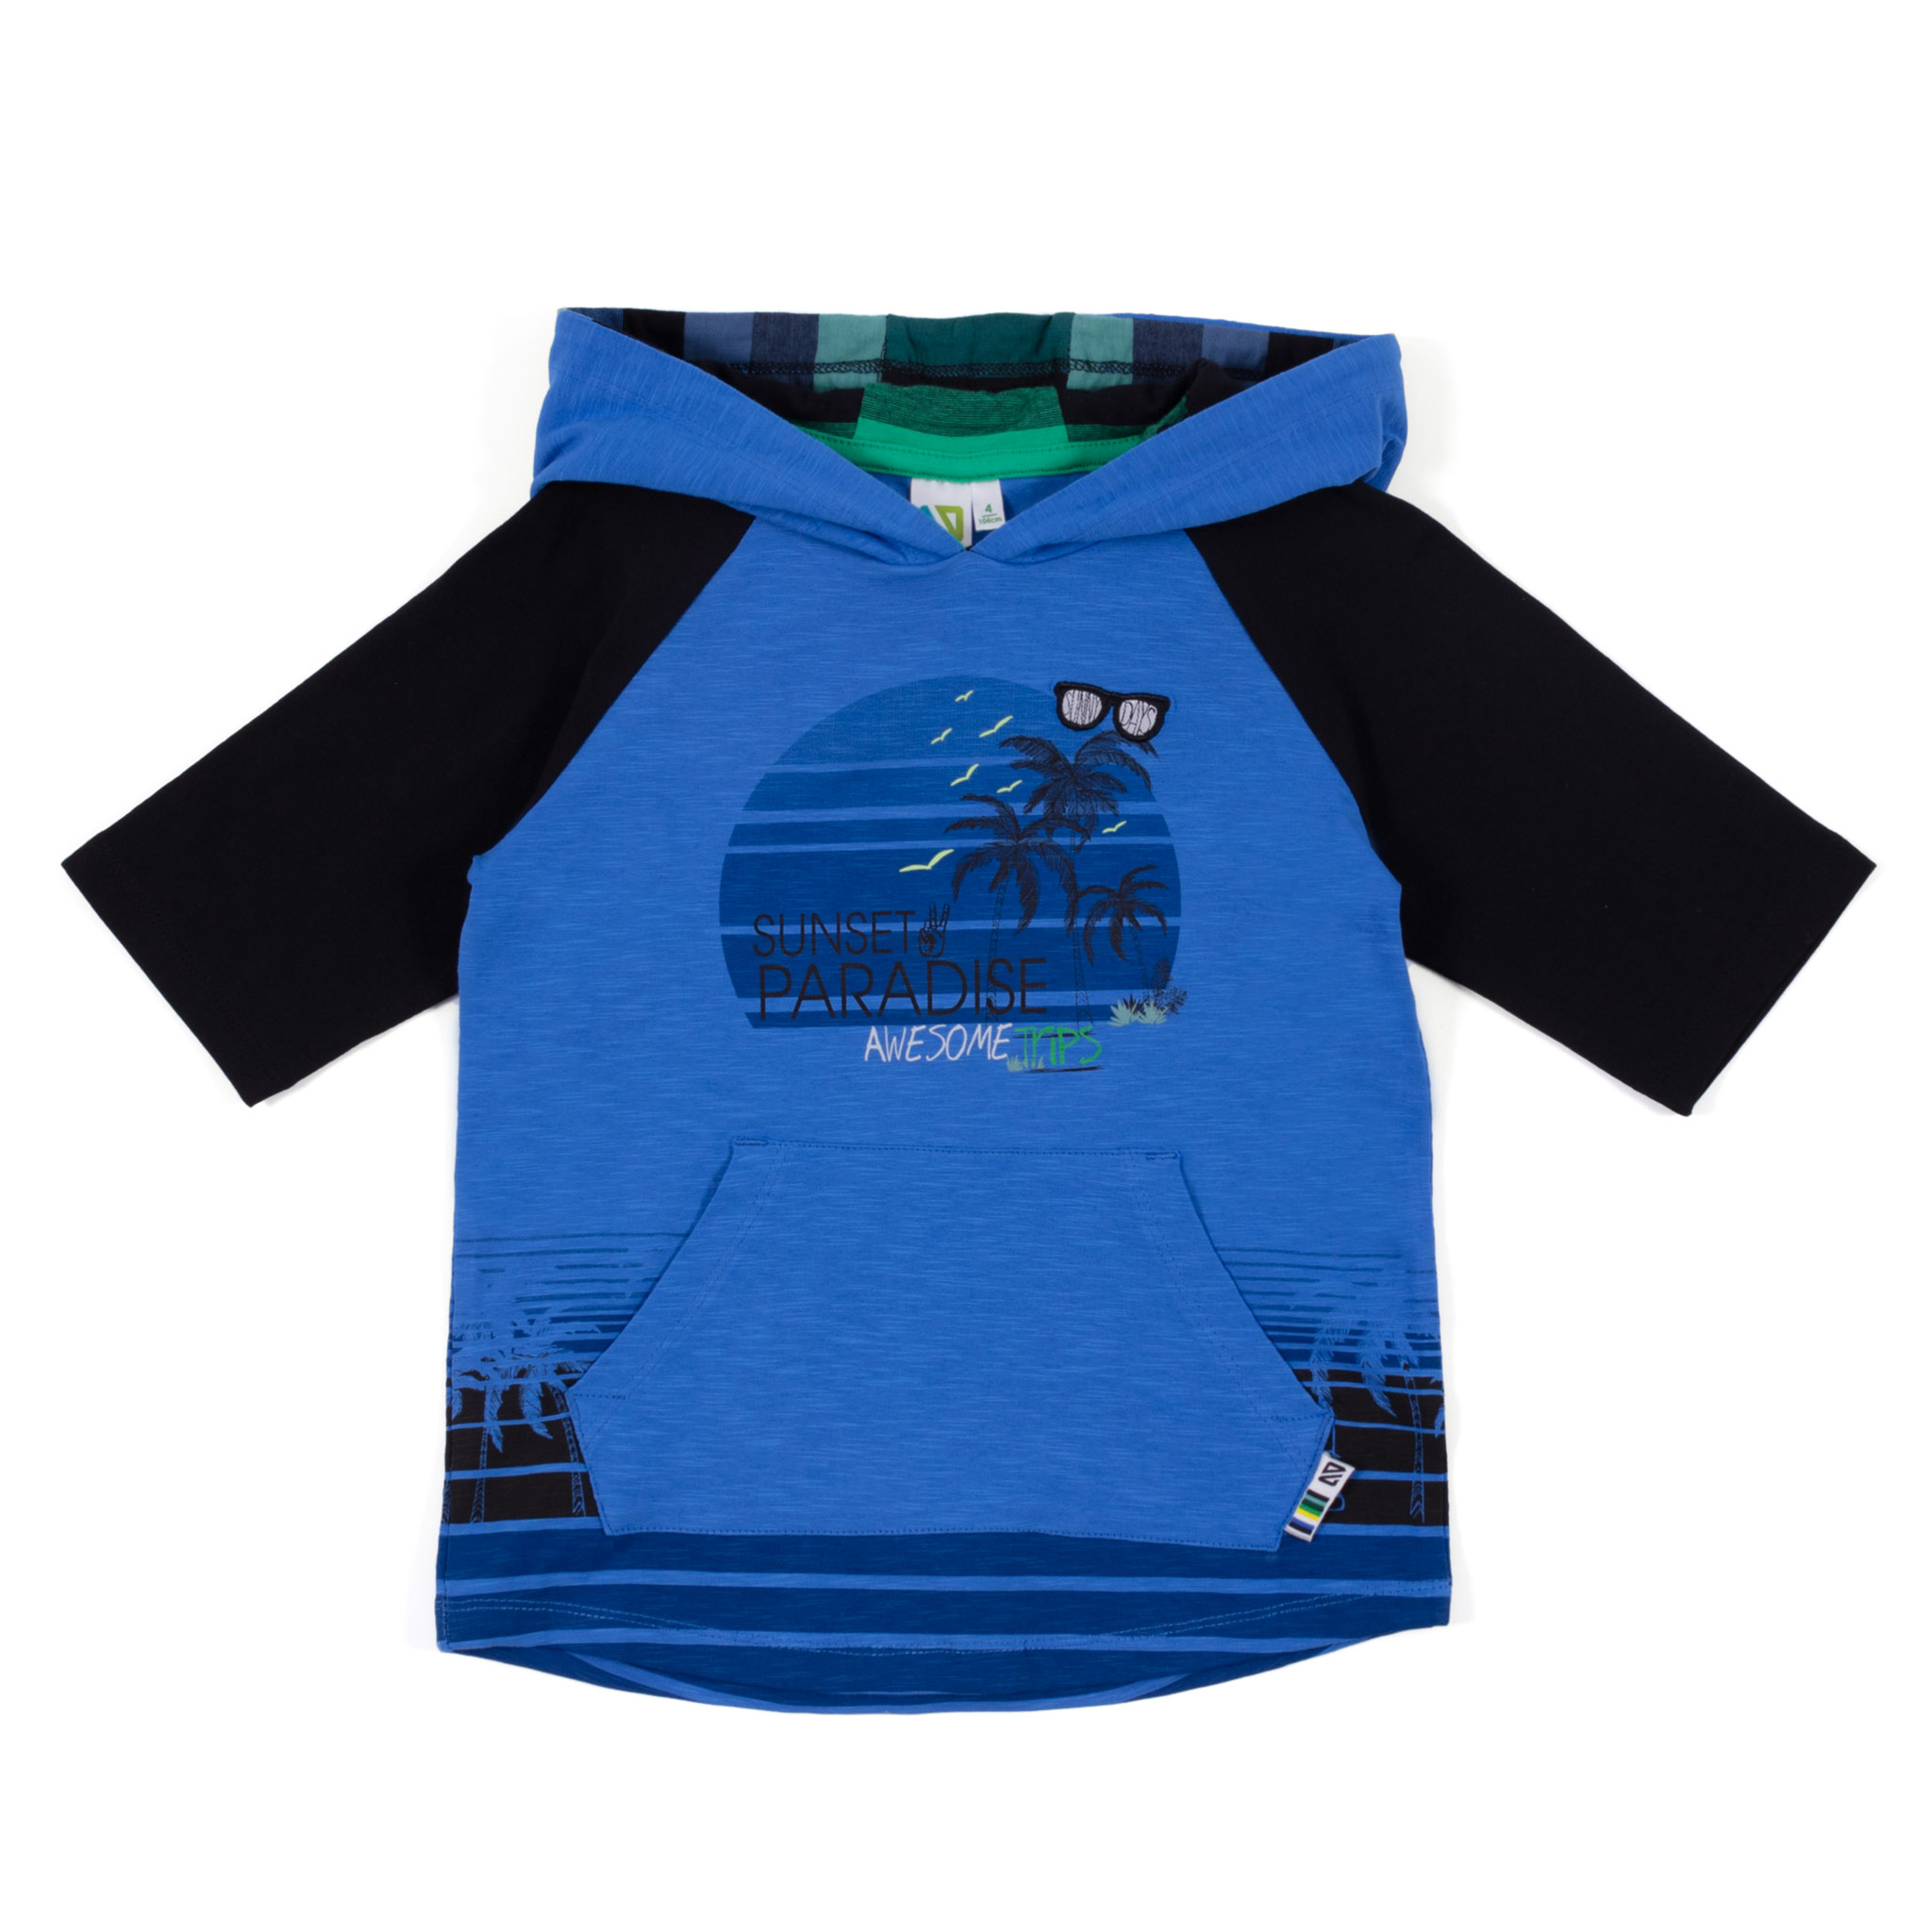 Hooded t-shirt - Royal - Boys